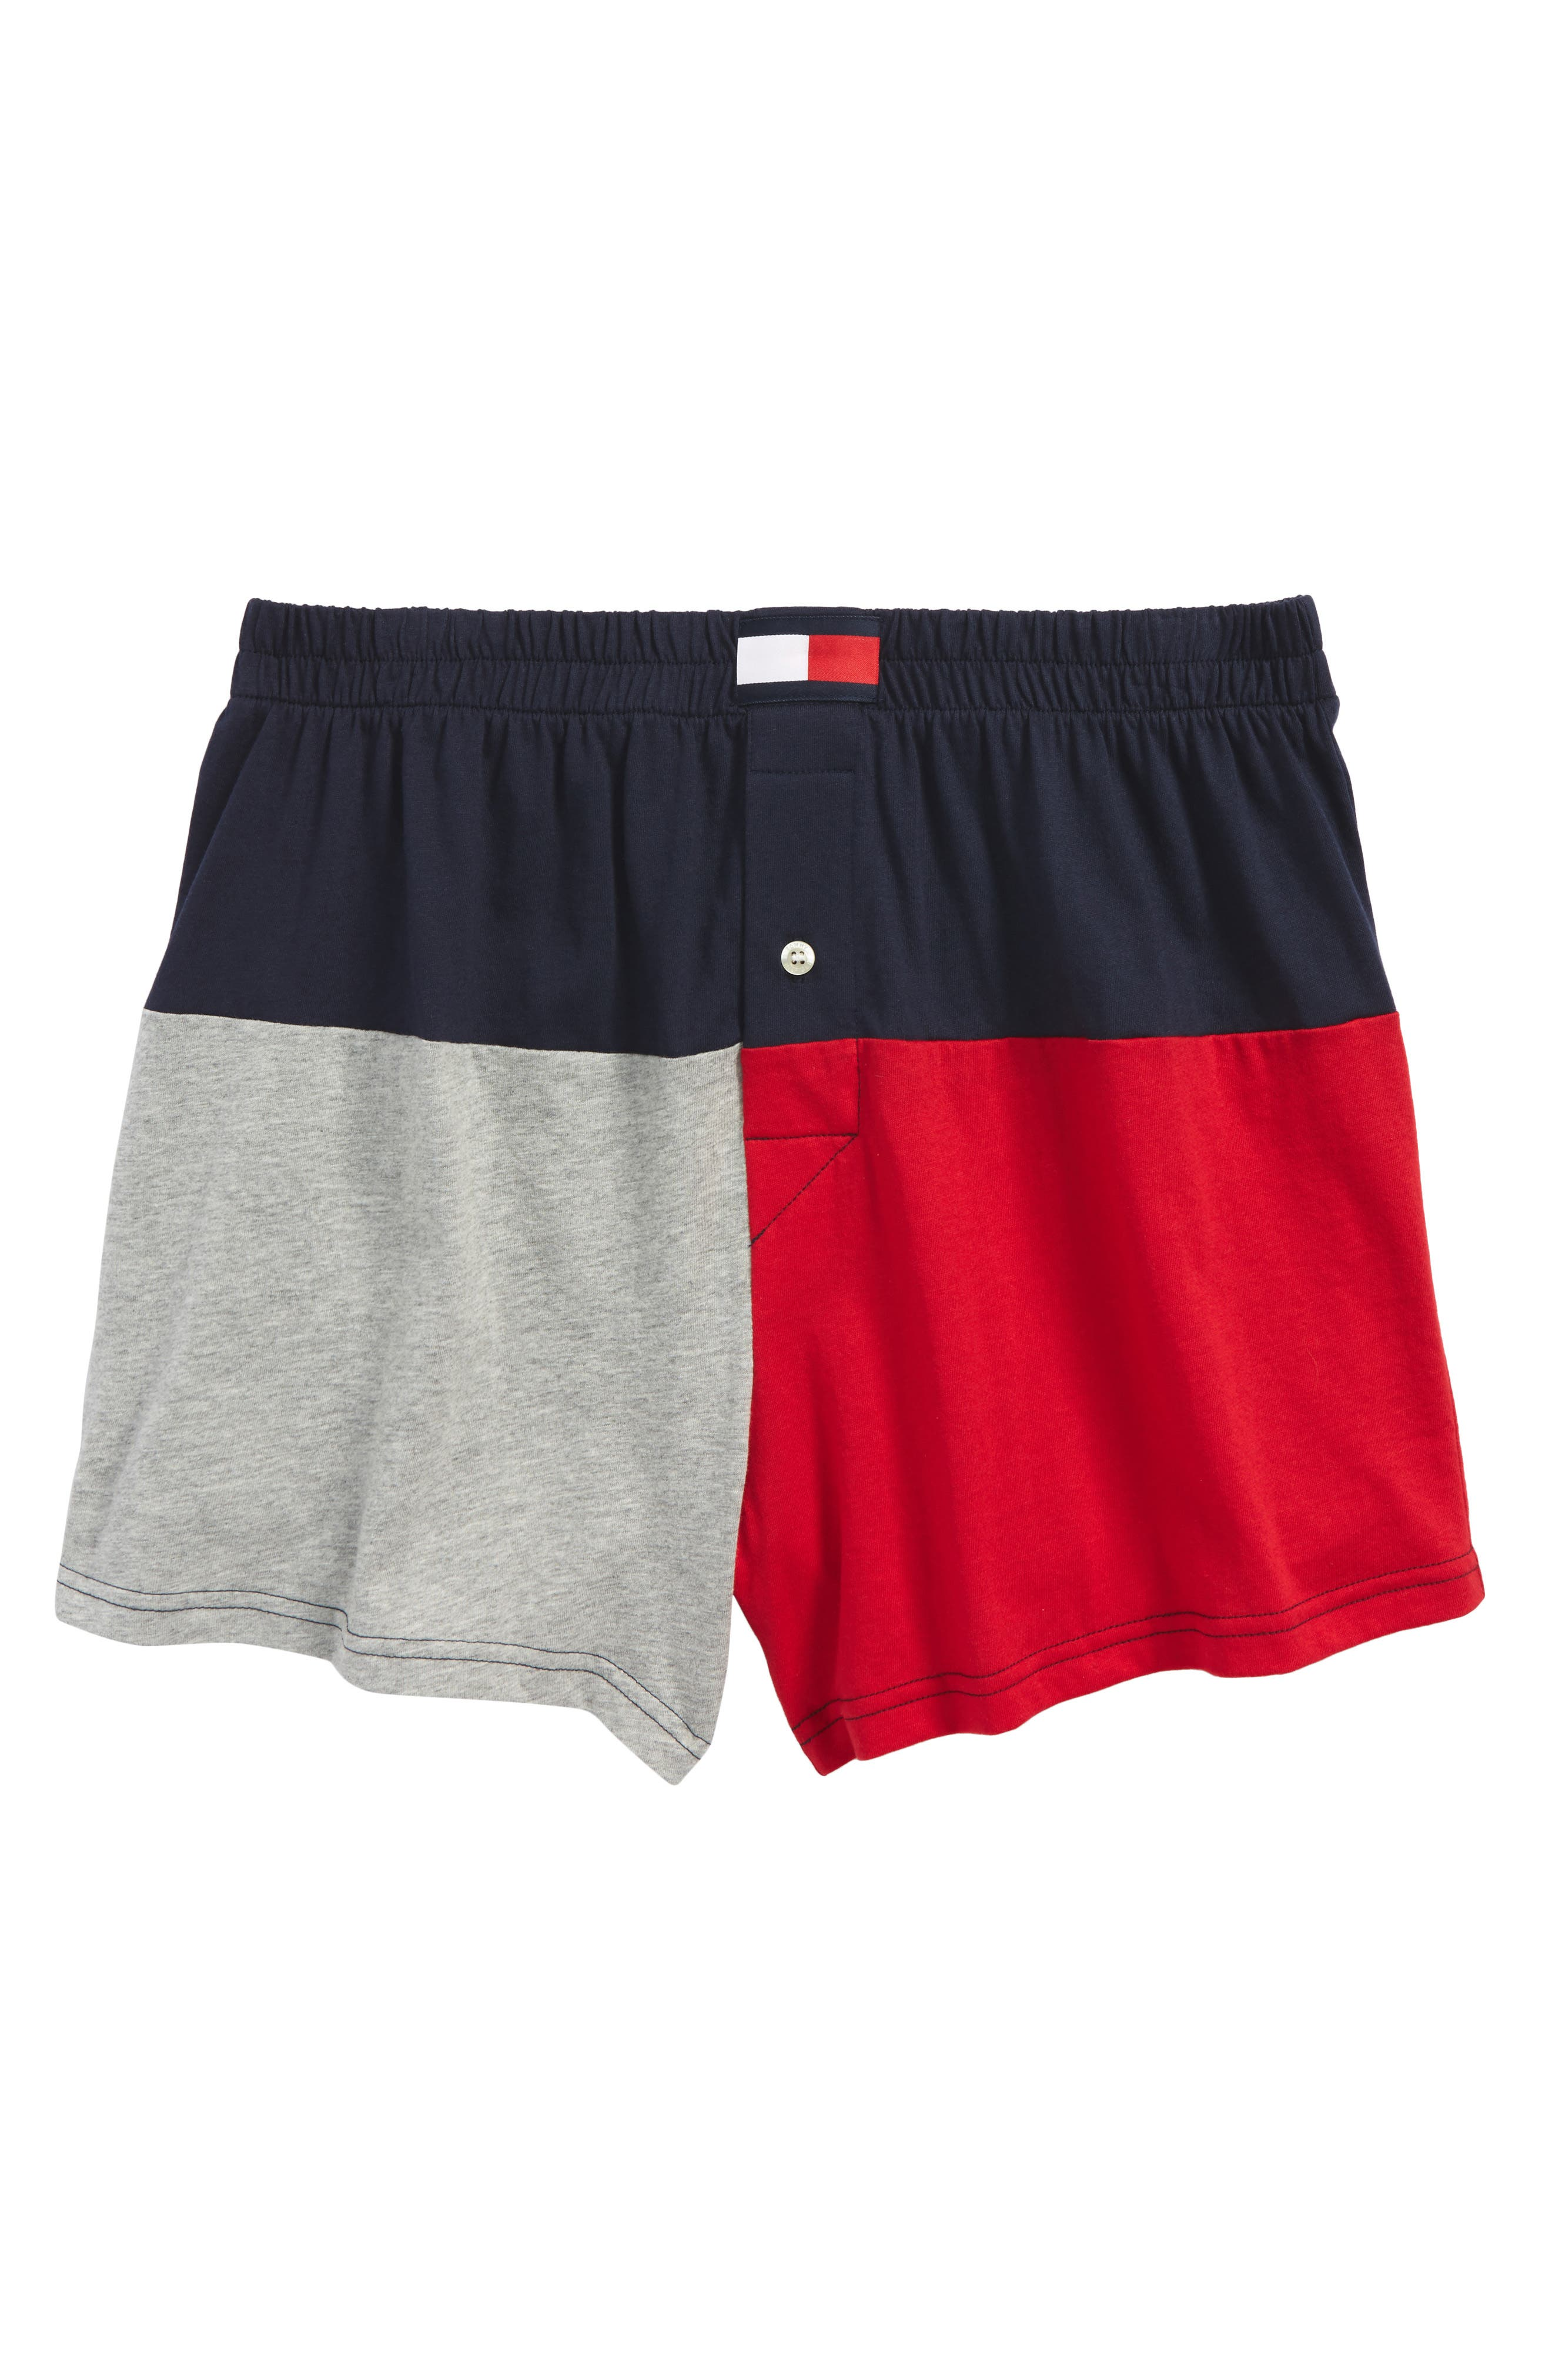 Tommy Hilfiger Colorblock Knit Boxers